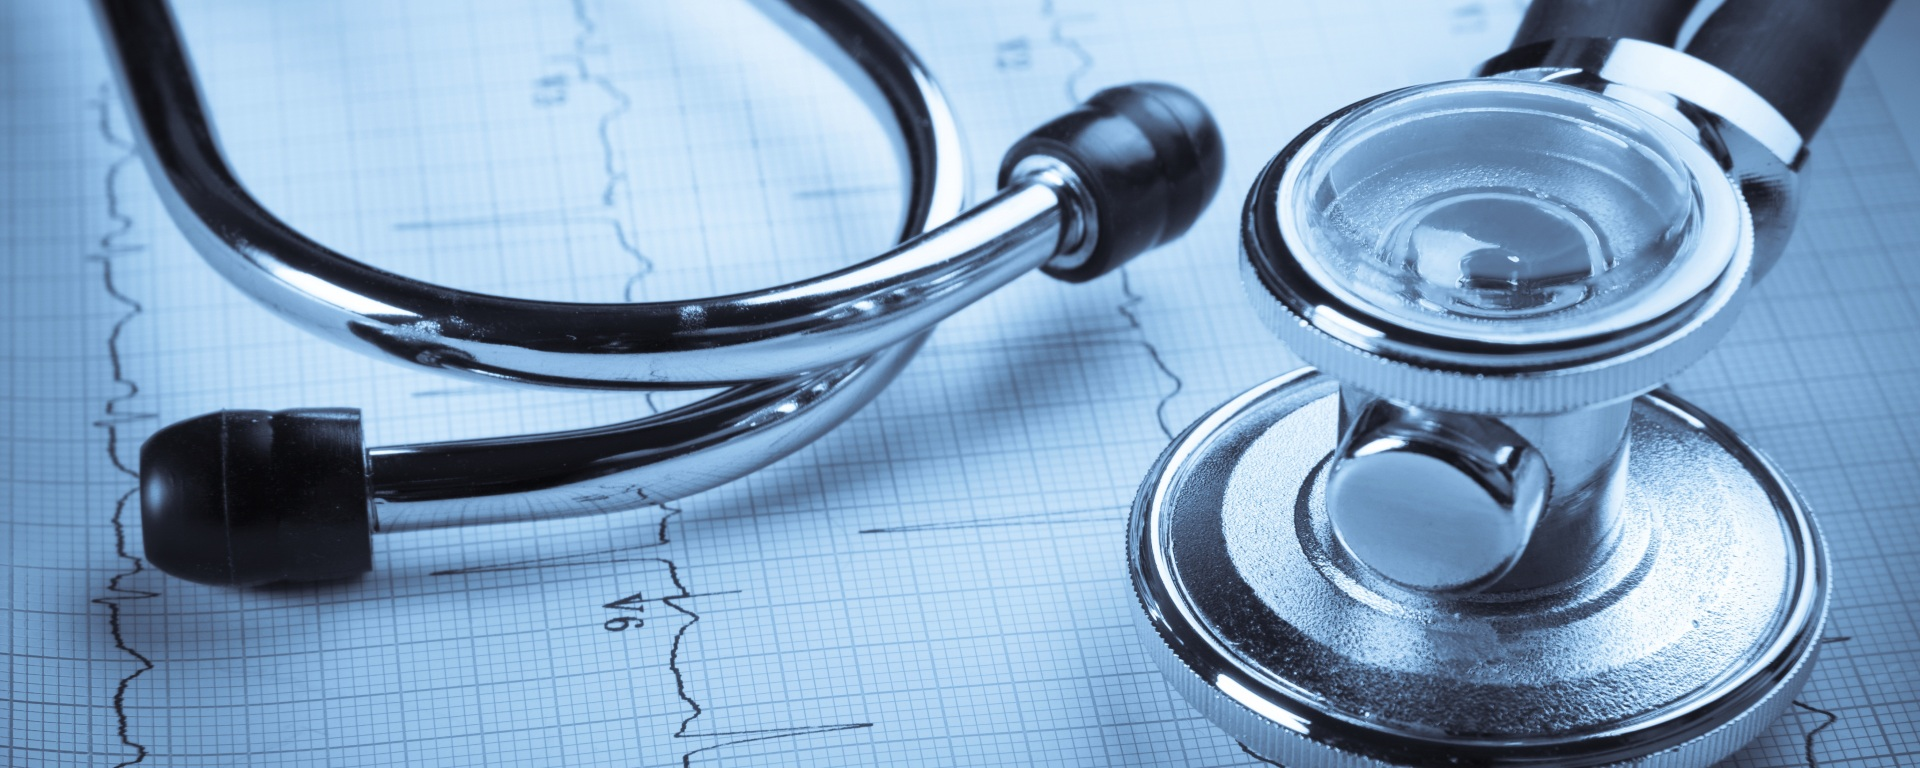 Stethoscope and EKG print out.